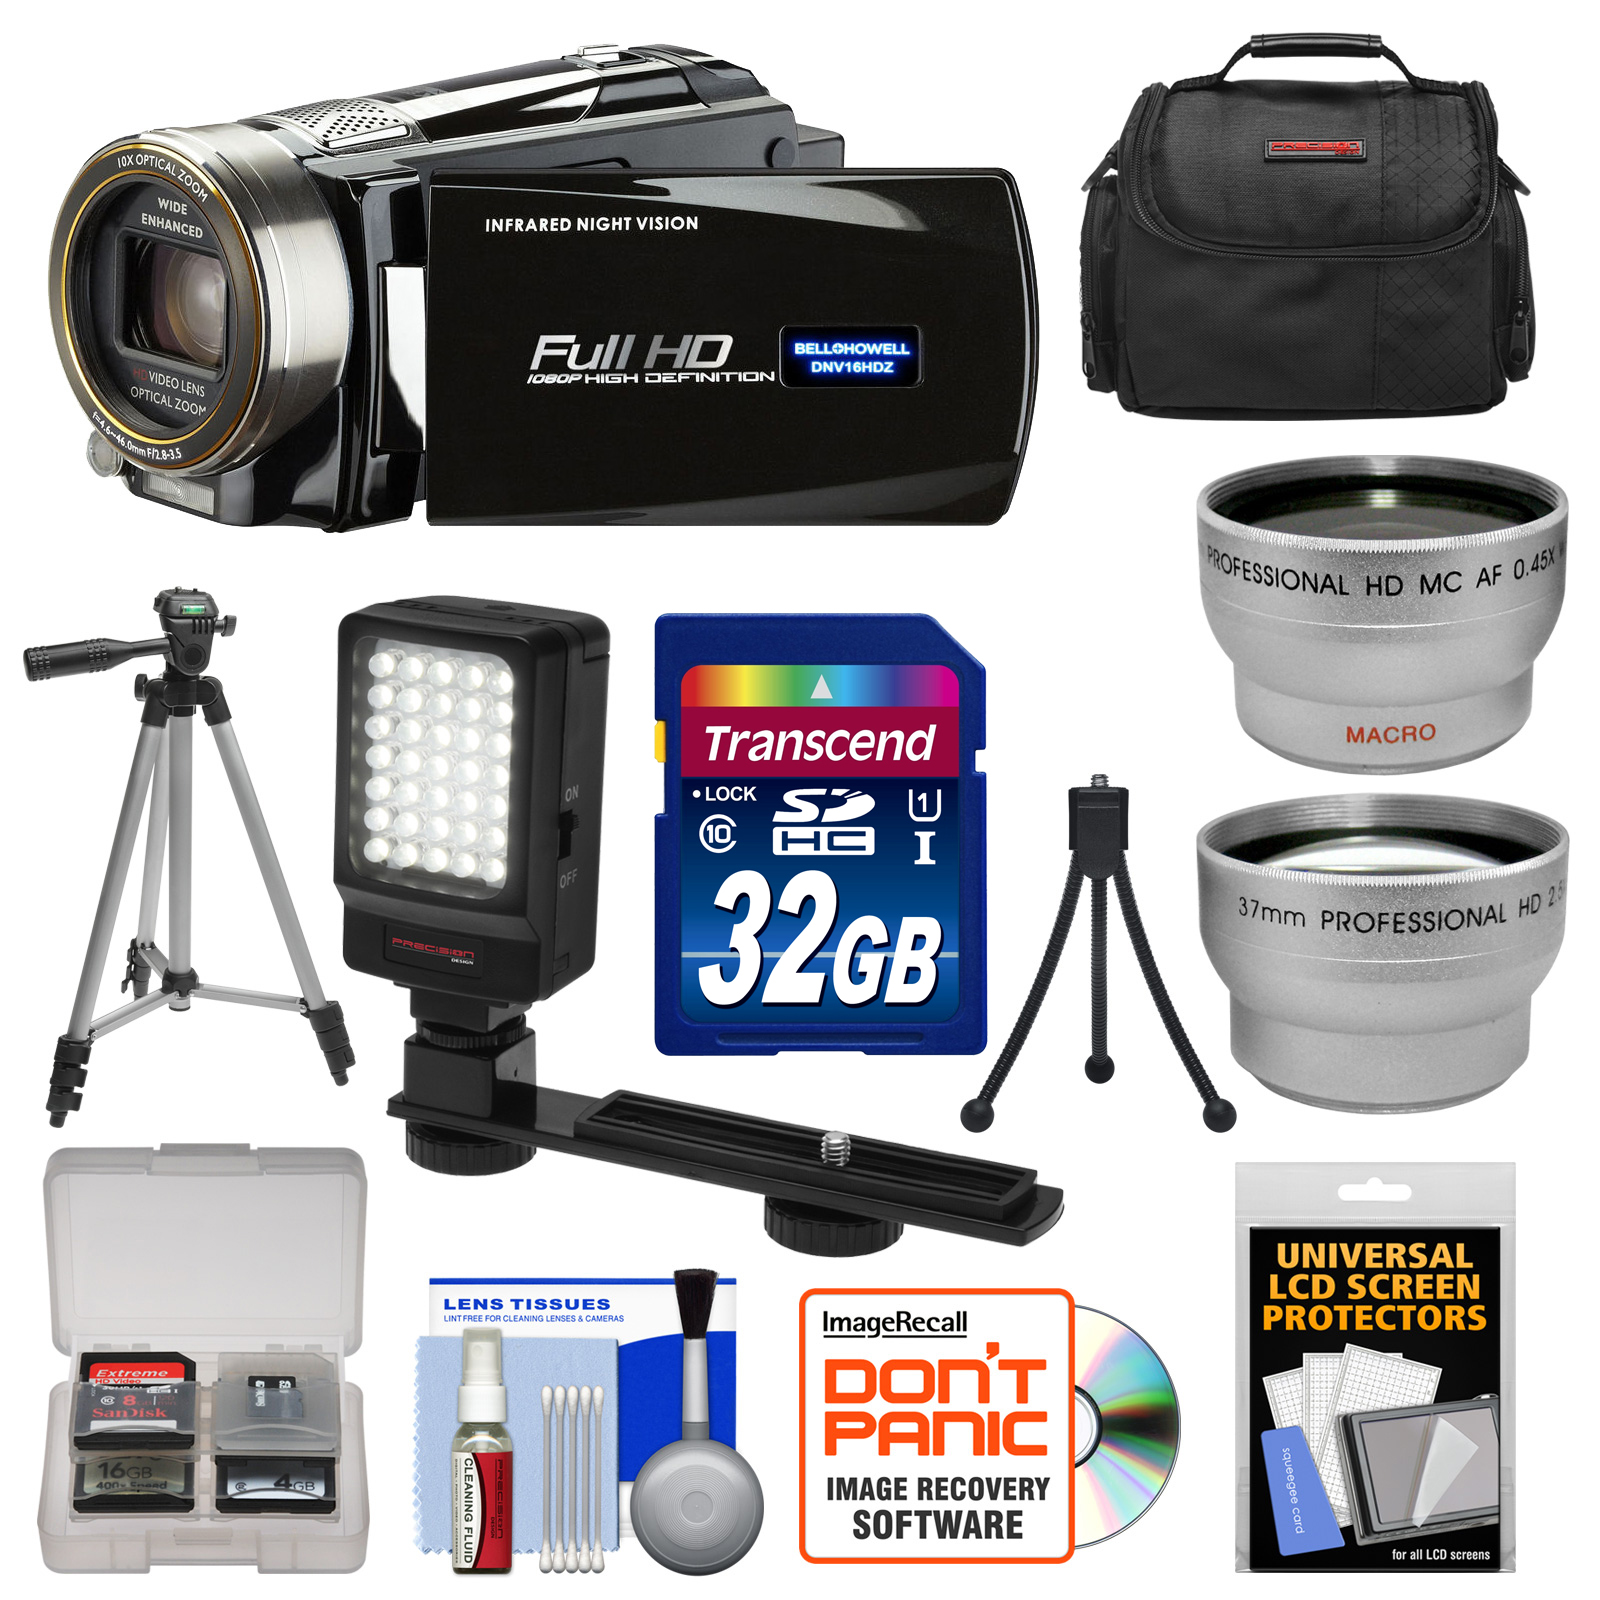 Bell & Howell DNV16HDZ 1080p HD Video Camera Camcorder with Infrared Night Vision (Black) with 32GB Card + Case + Tripod + Video Light + Wide Angle & Telephoto Lenses + Accessory Kit